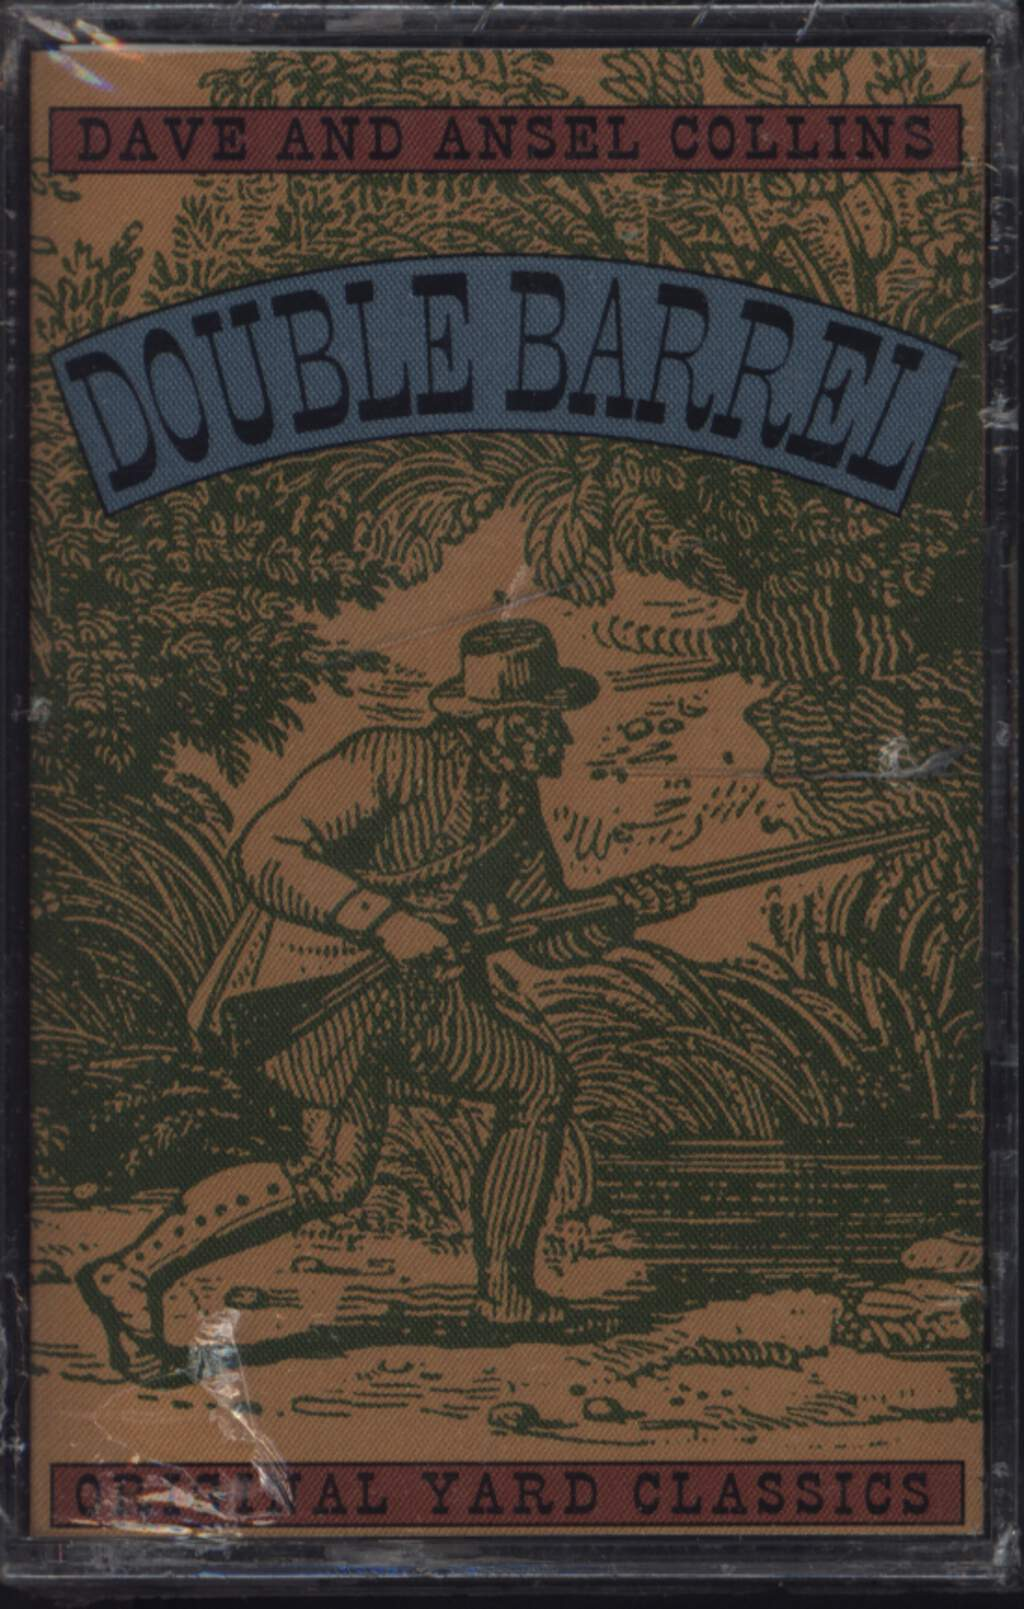 Dave & Ansel Collins: Double Barrel, Tape